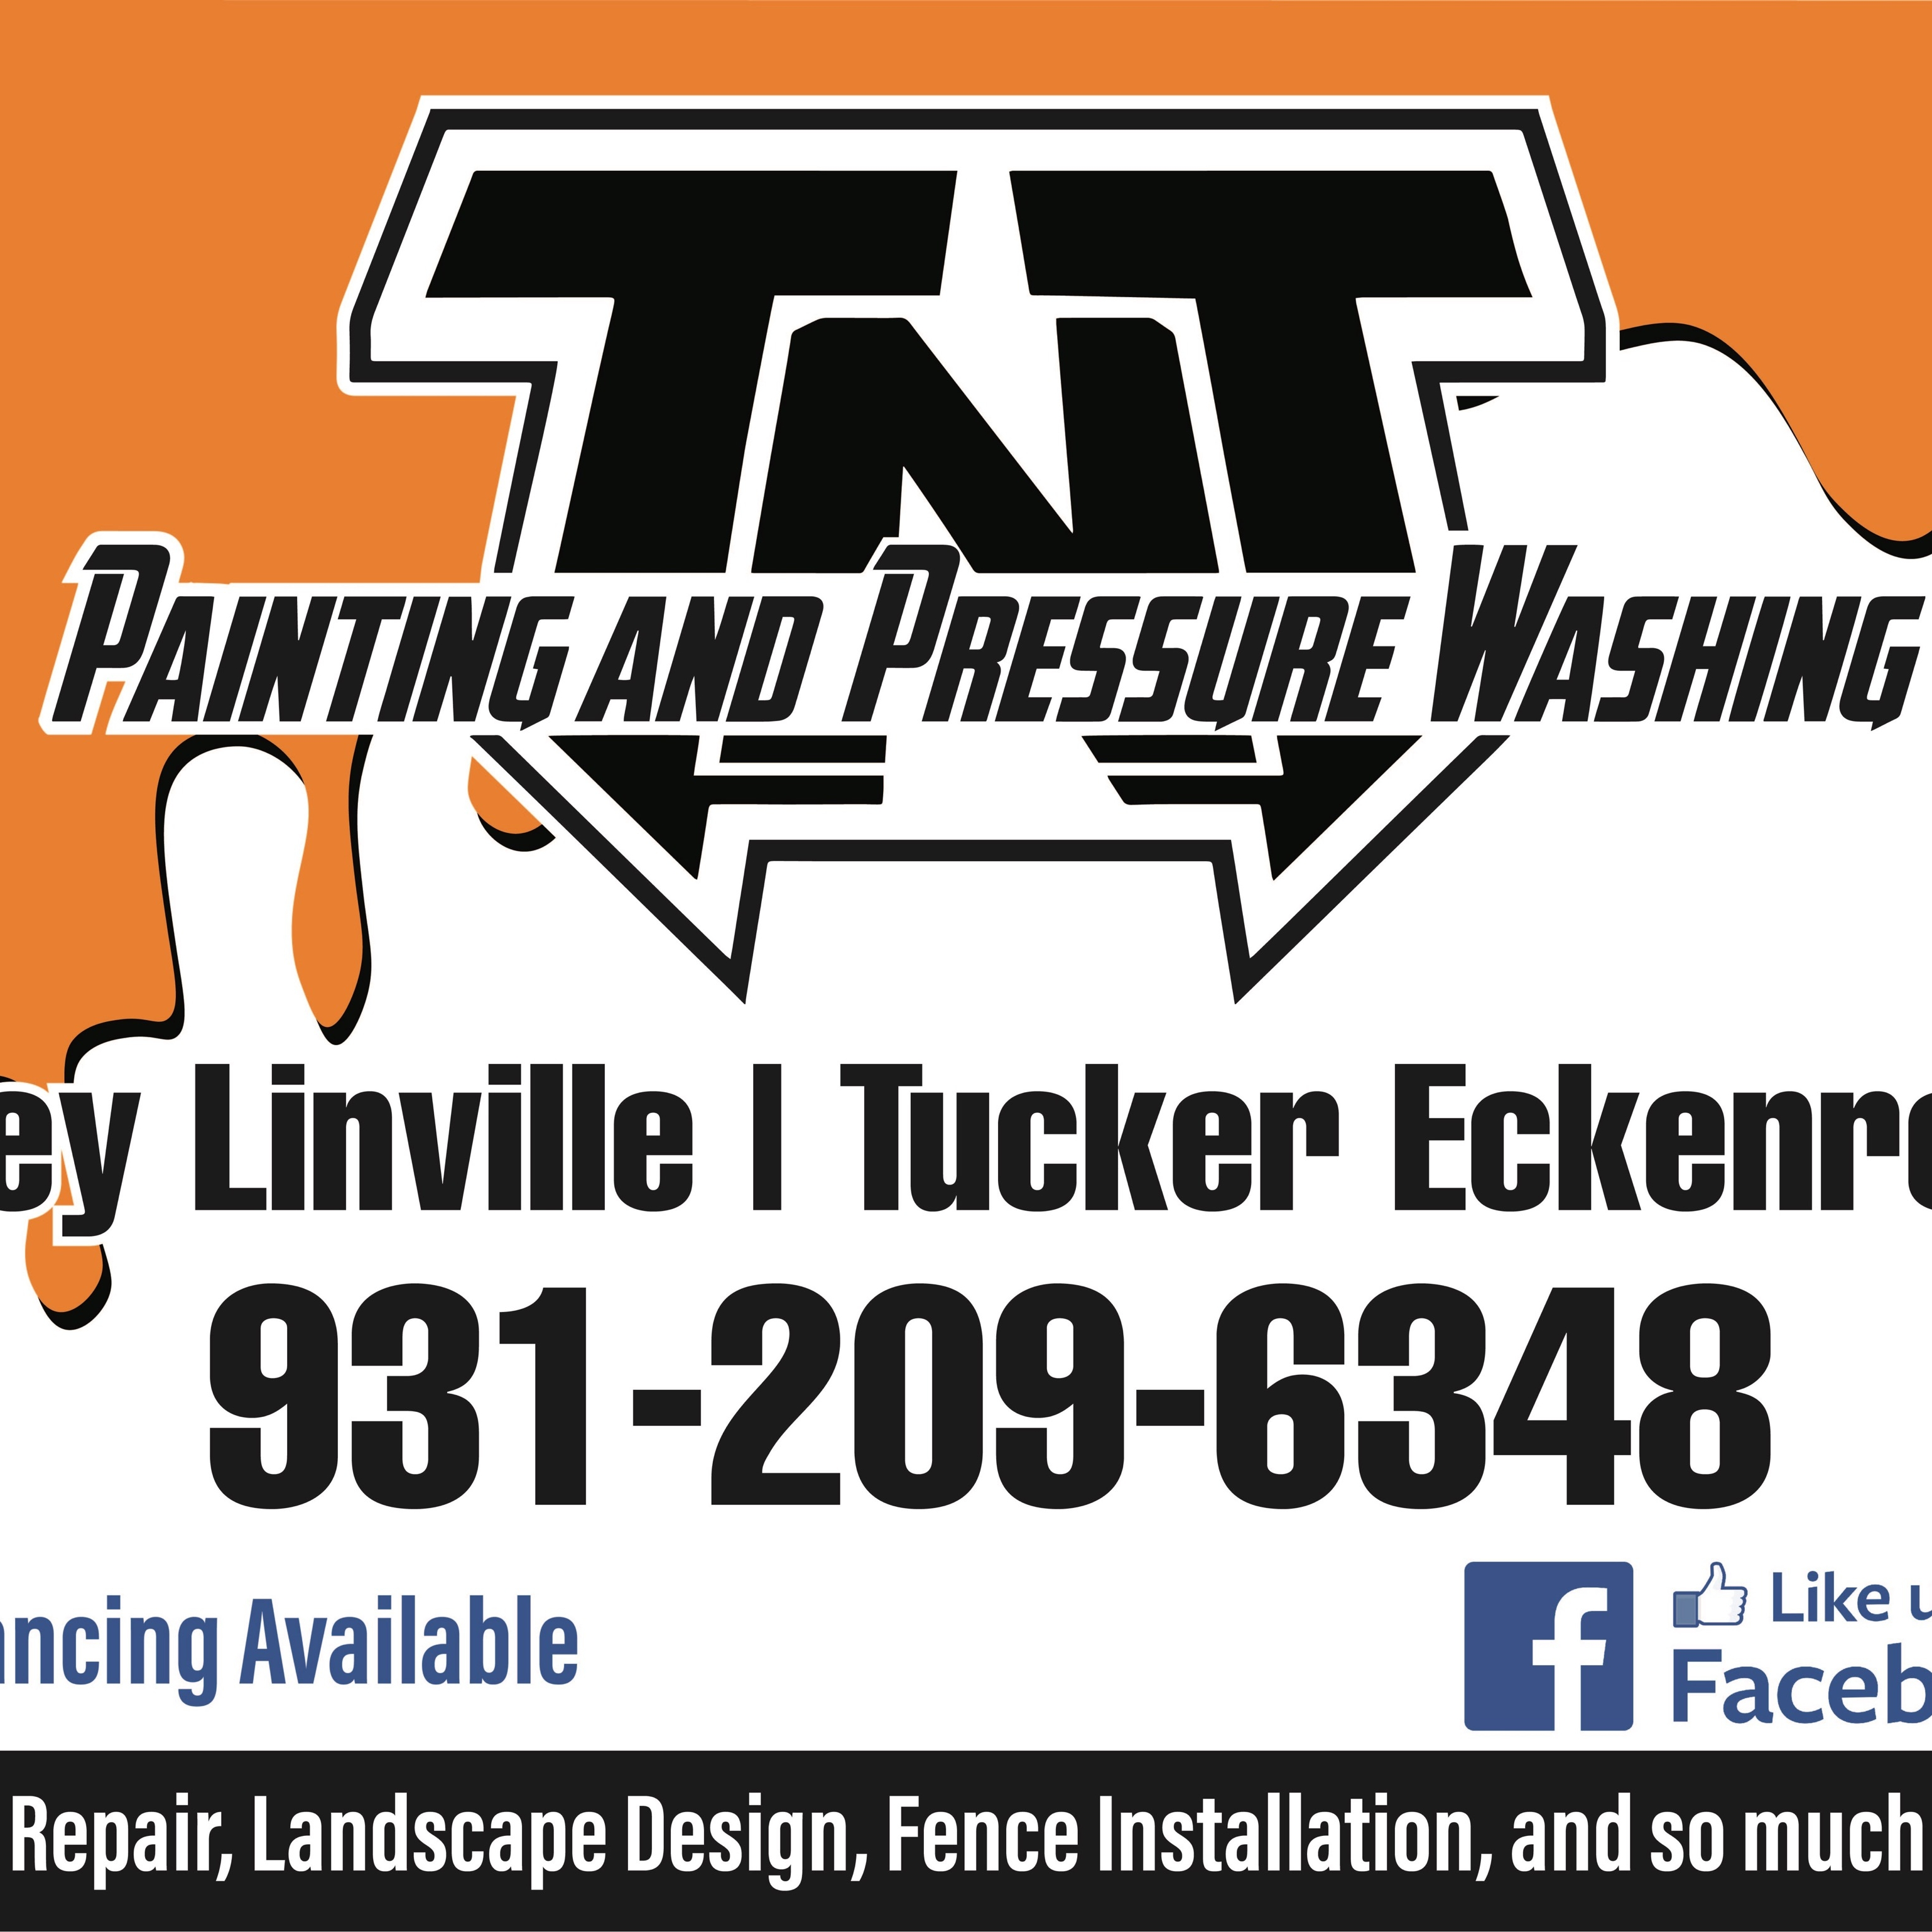 TNT Painting And Pressure Washing